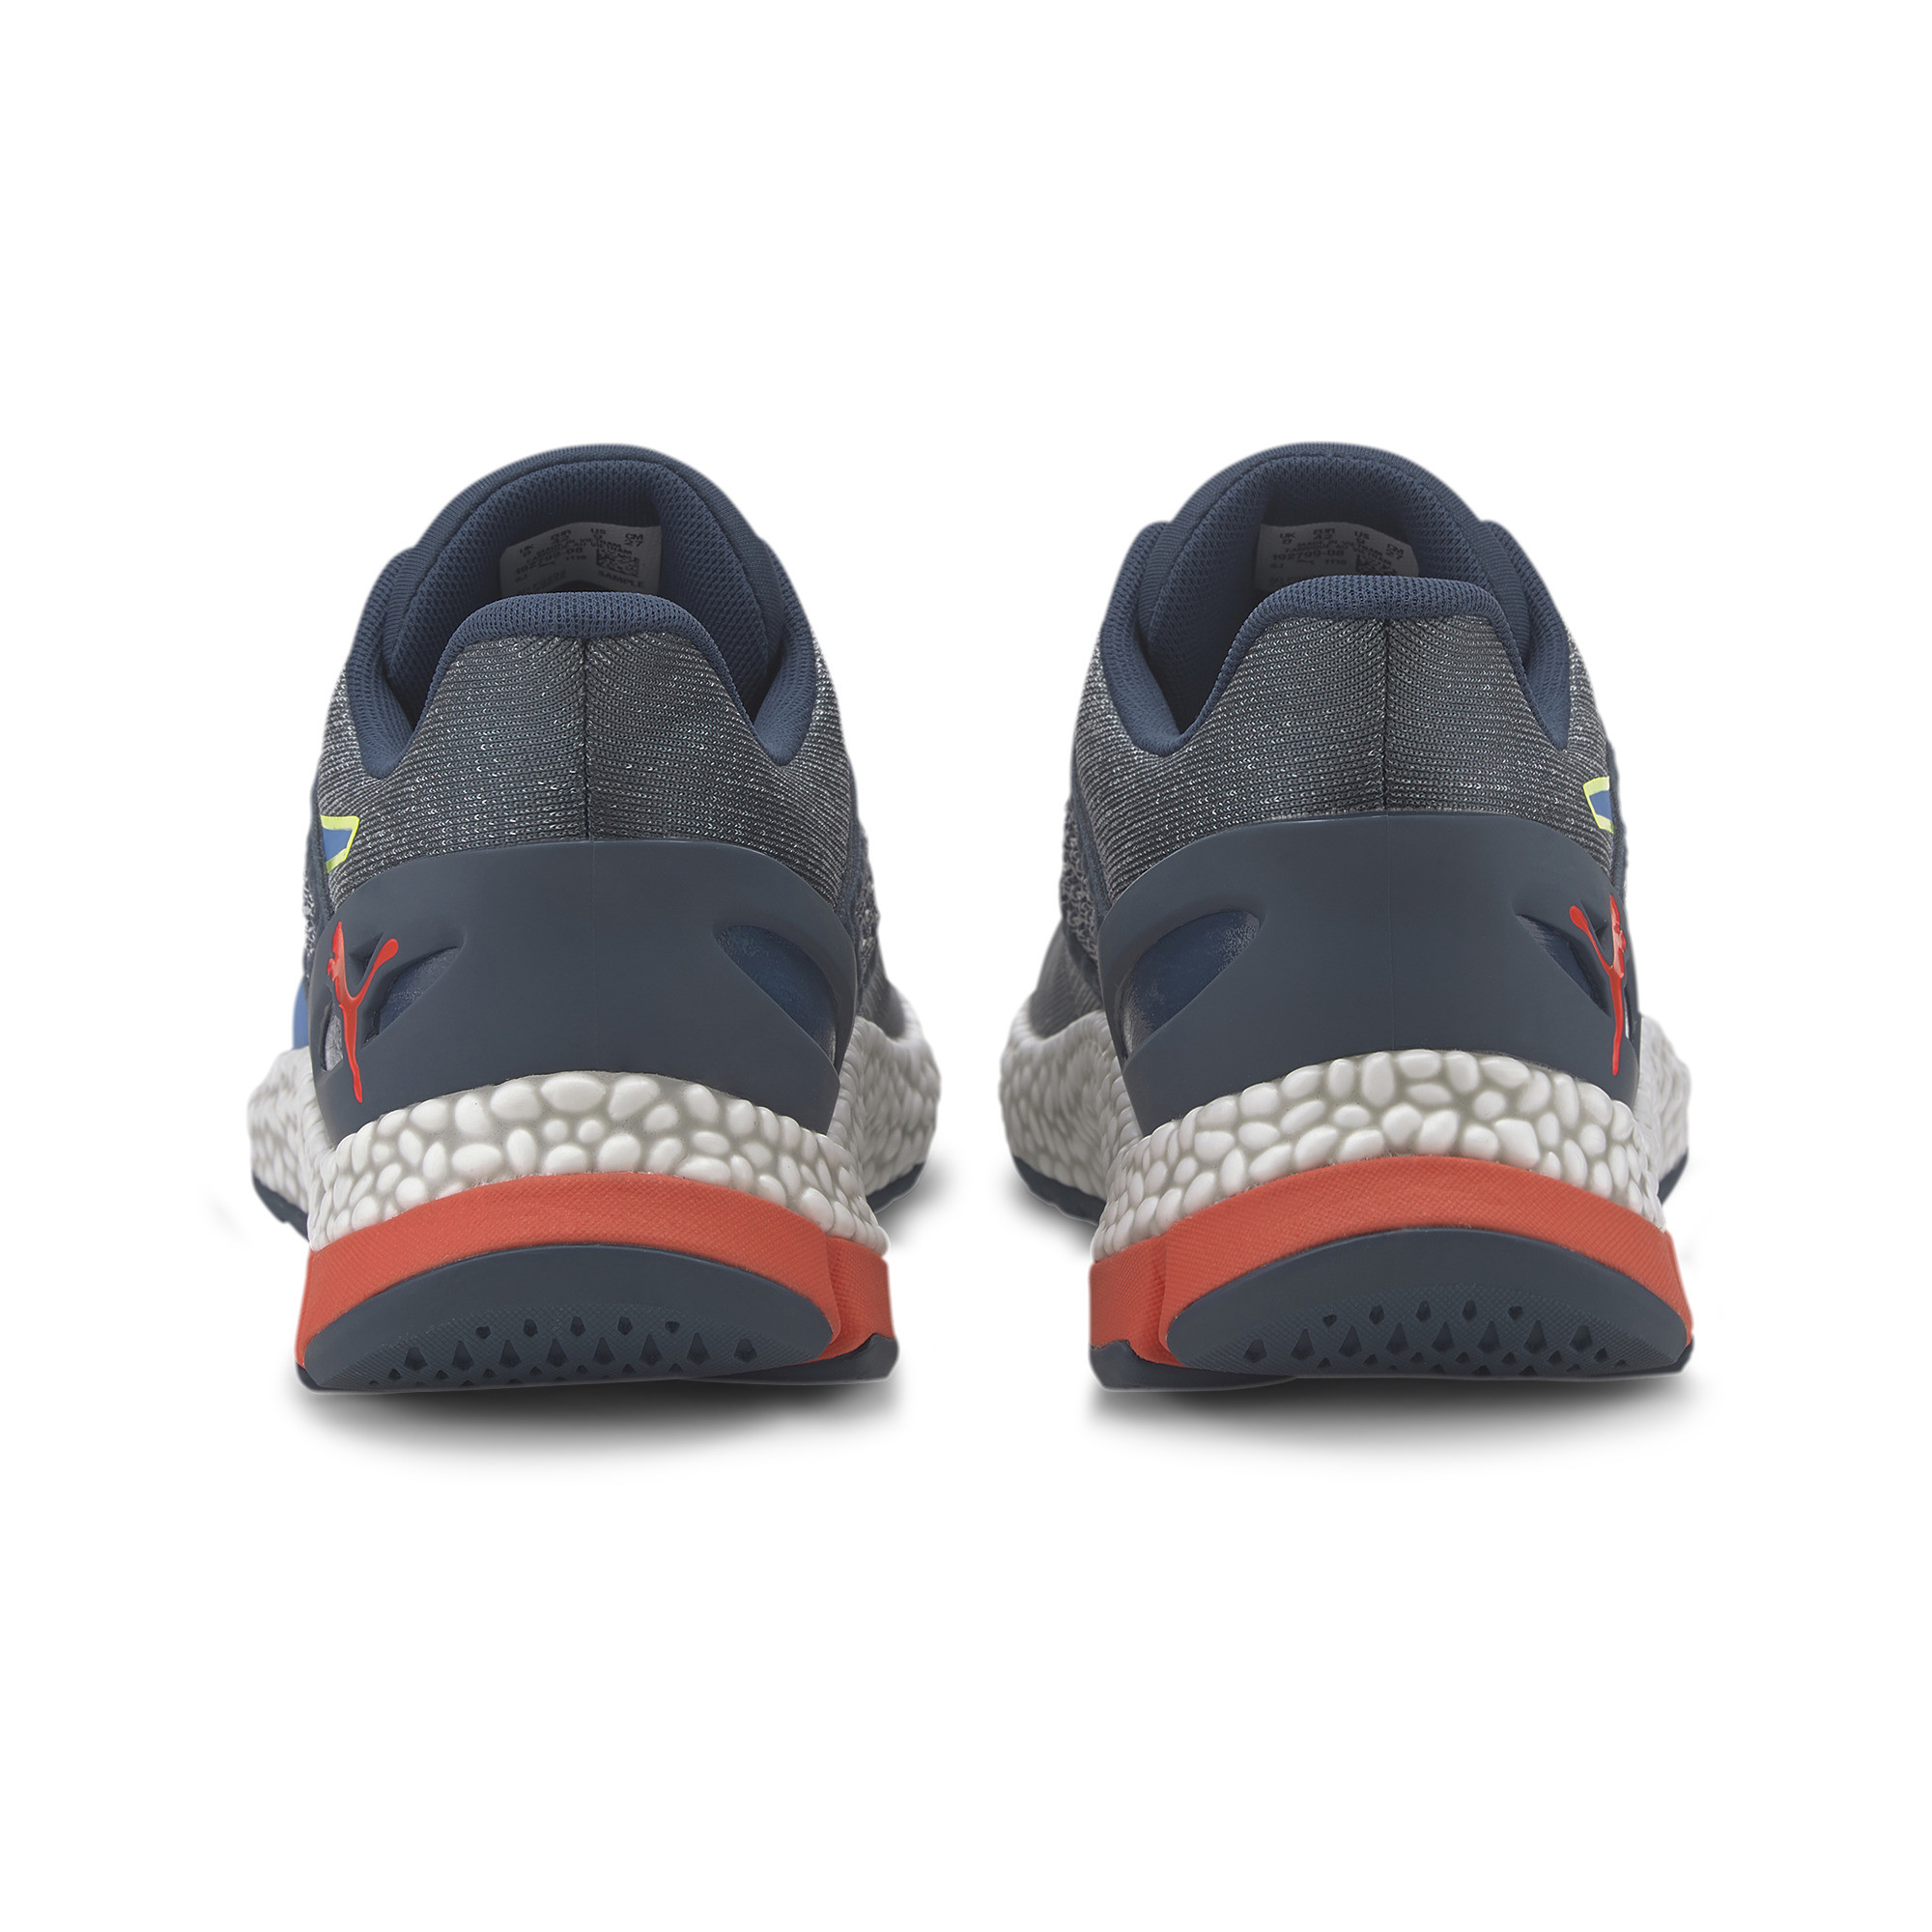 PUMA-Men-039-s-HYBRID-Astro-Running-Shoes thumbnail 22